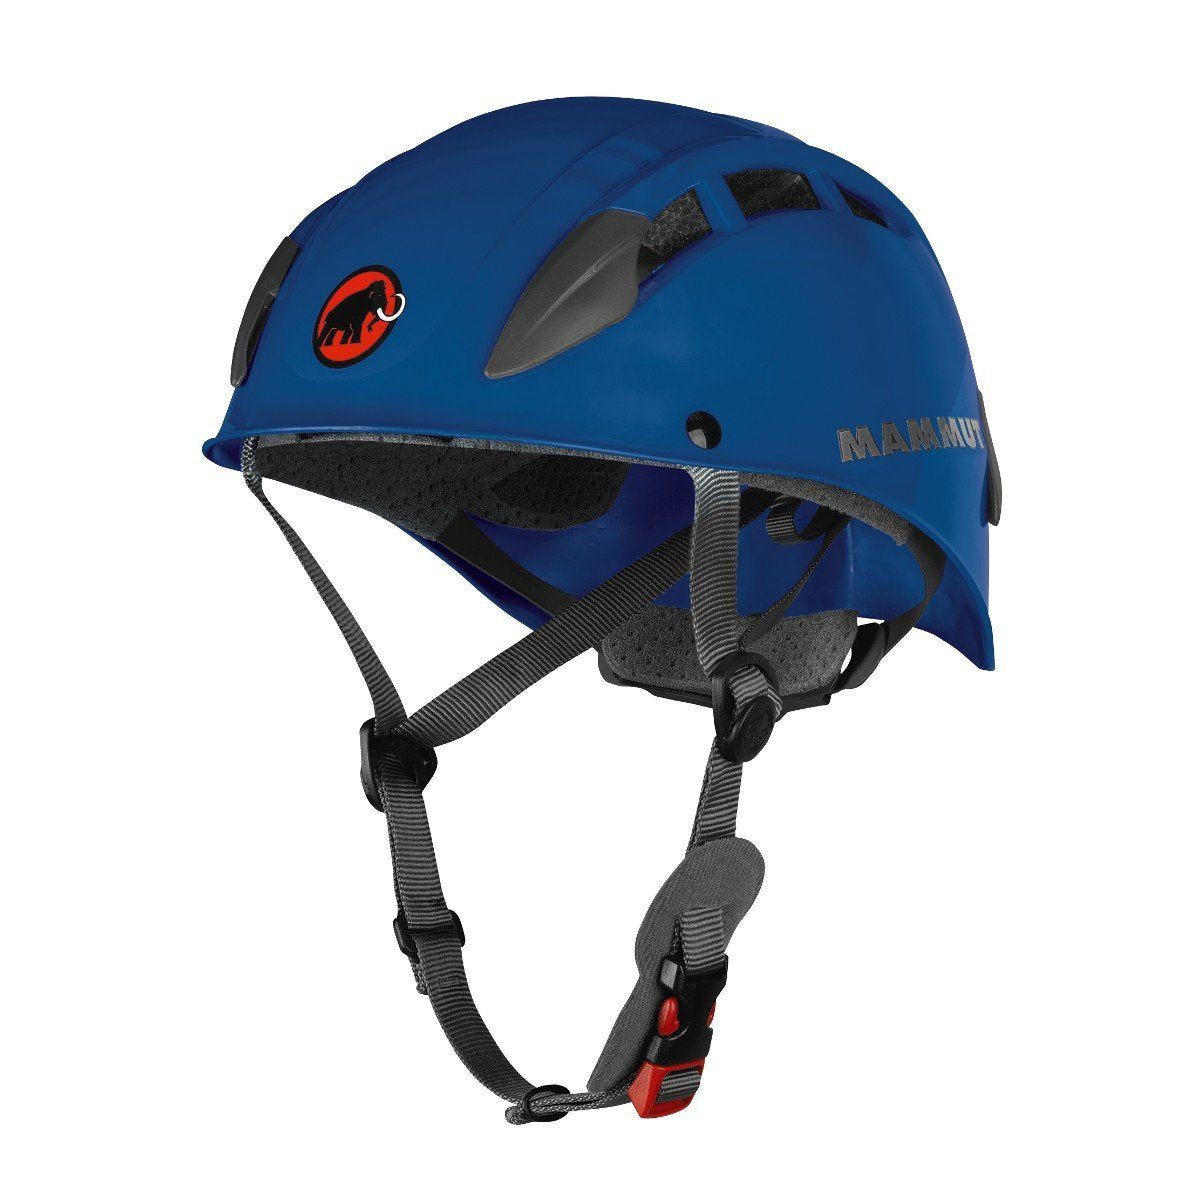 Mammut Skywalker 2 climbing helmet, in blue colour